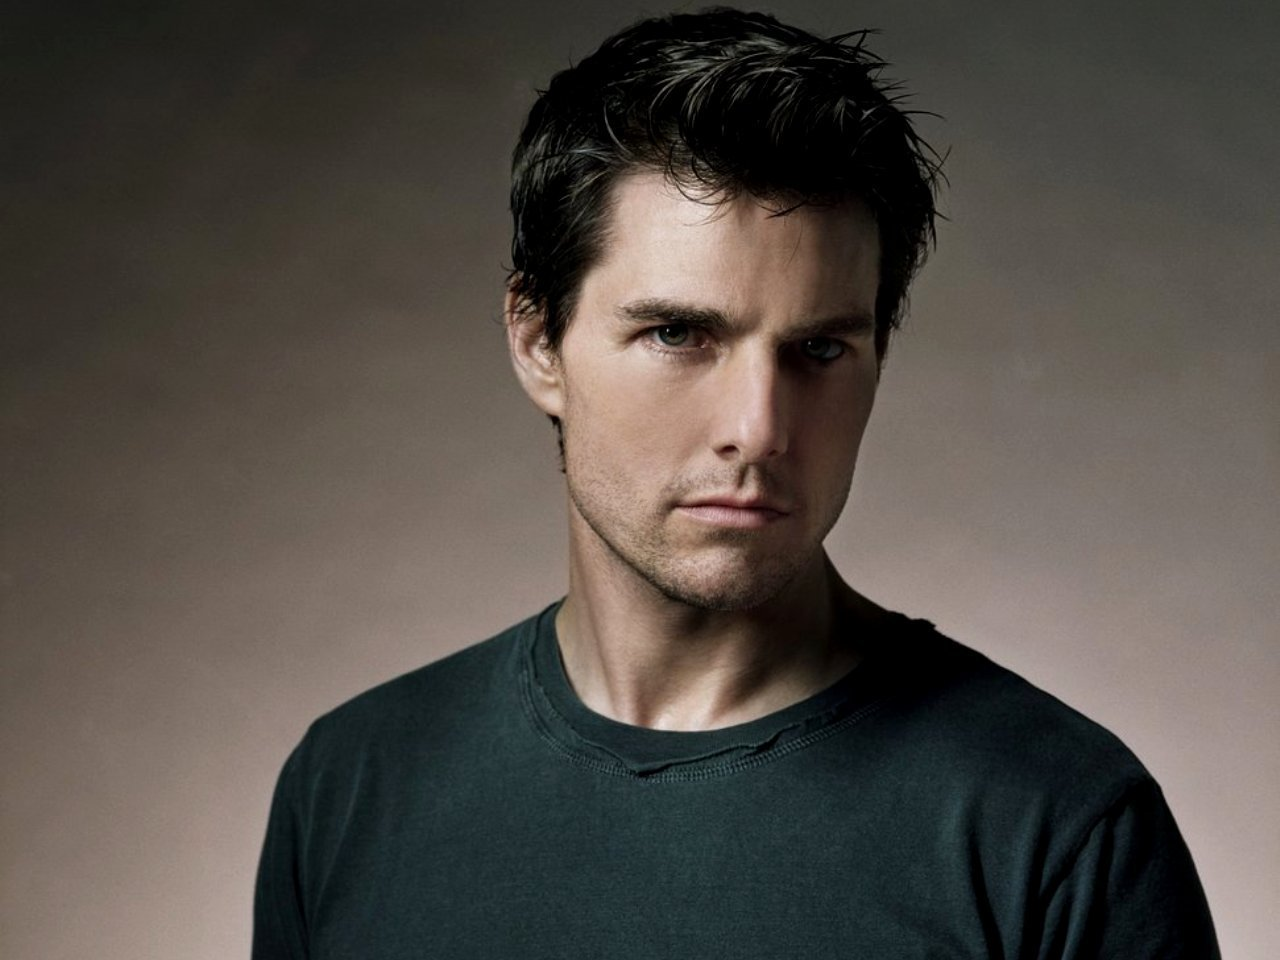 Tom Cruise Tom Cruise Wallpaper 18576244 Fanpop